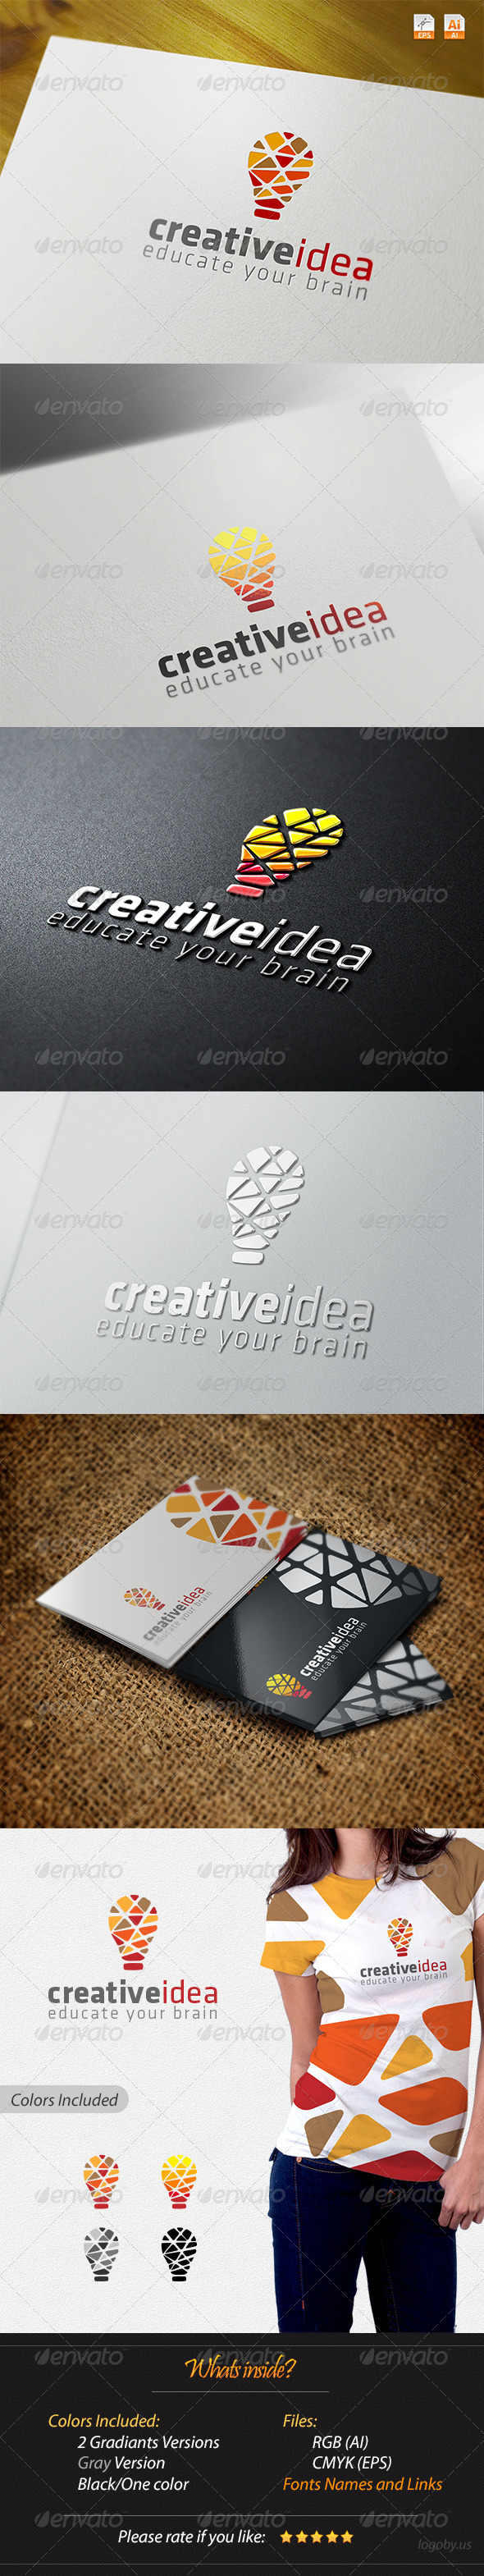 GraphicRiver Creative Idea Educate Your Brain 4252876